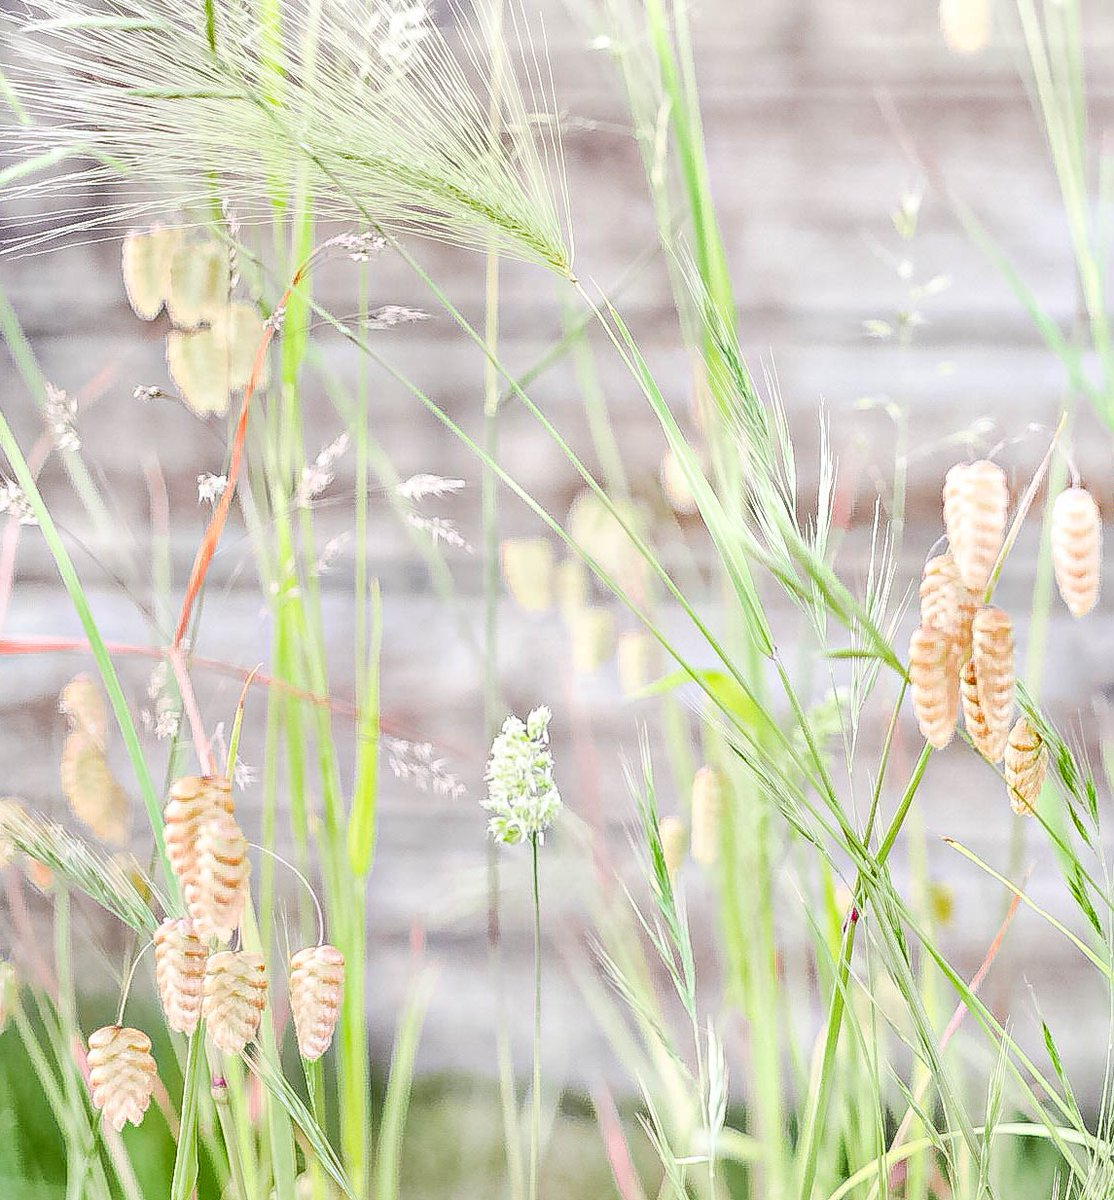 Do you want to contribute to new understanding of #grass ecology and evolution? Come help us build a new #phylogeny of the 'cool season grasses'! #postdoc available: https://t.co/K4jedgPQgN(1/n) https://t.co/AeZx7Dj5TJ